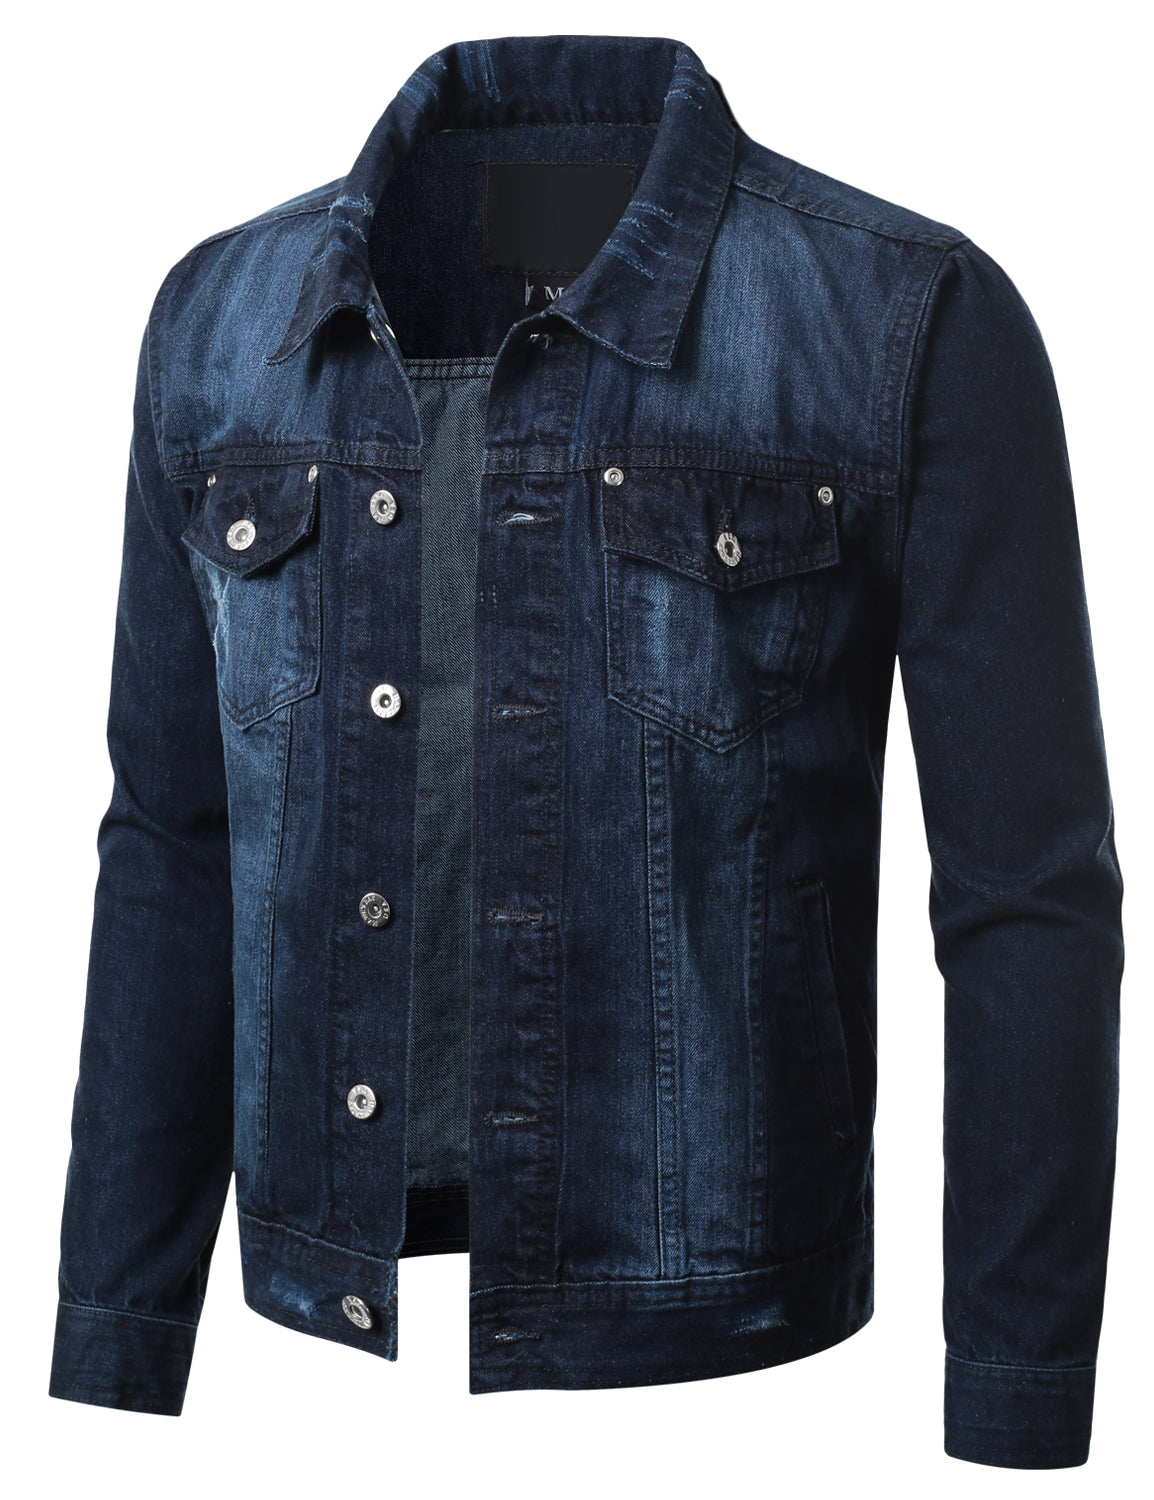 DSBBLUE Button Down Denim Trucker Jacket - URBANCREWS